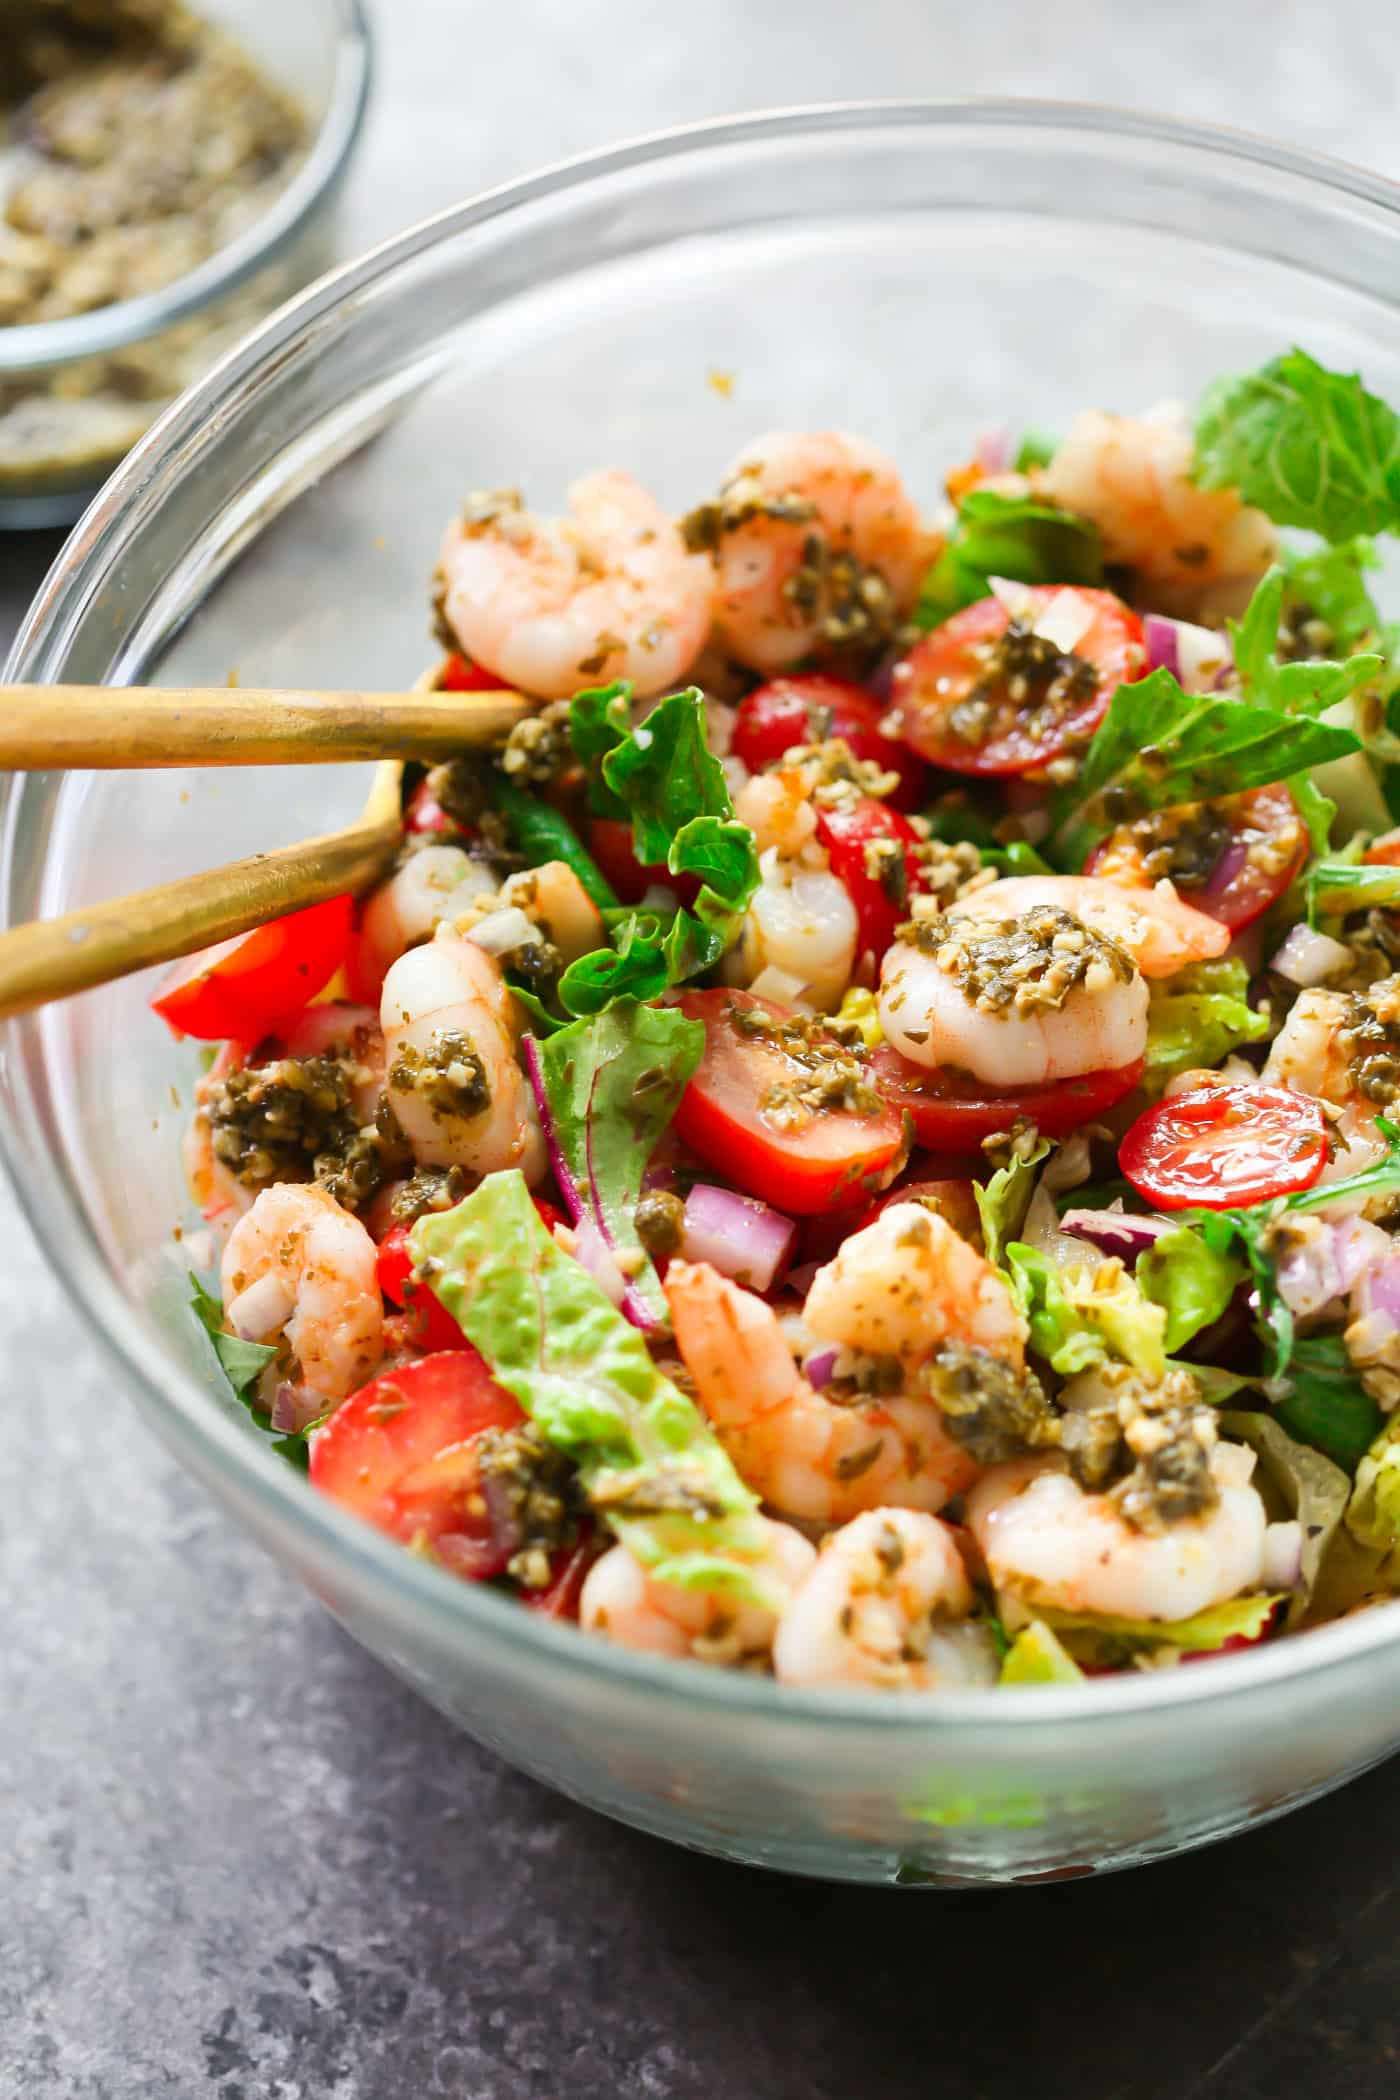 A glass bowl containing pesto shrimp tomato salad.